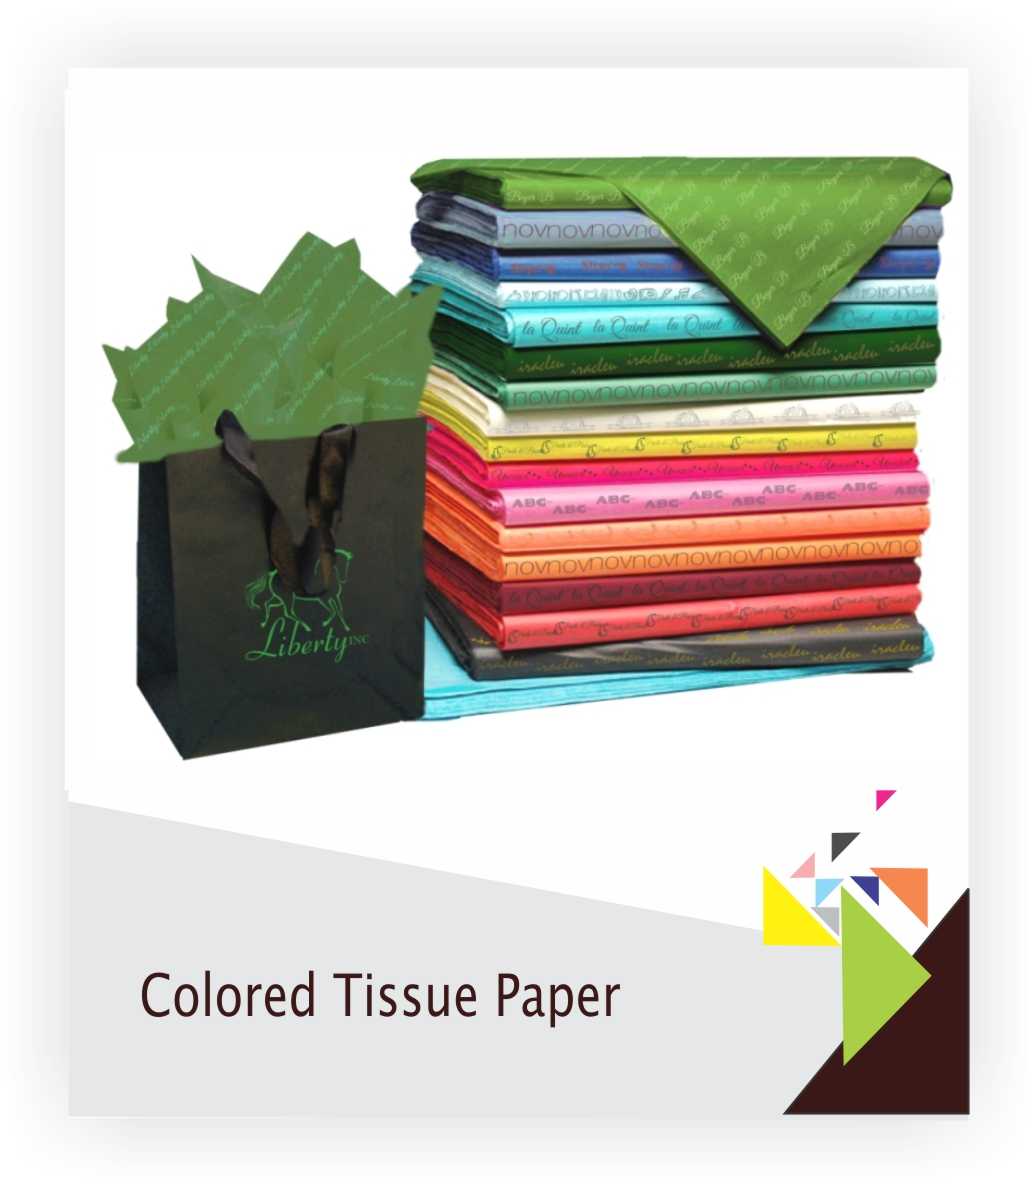 colored tissue paper 10 sheet pack colored tissue paper in poly bag with hang hole- #1 grade, 20 x 26- acid free- made in usa- price per pack see our large assortment of gift bags from.